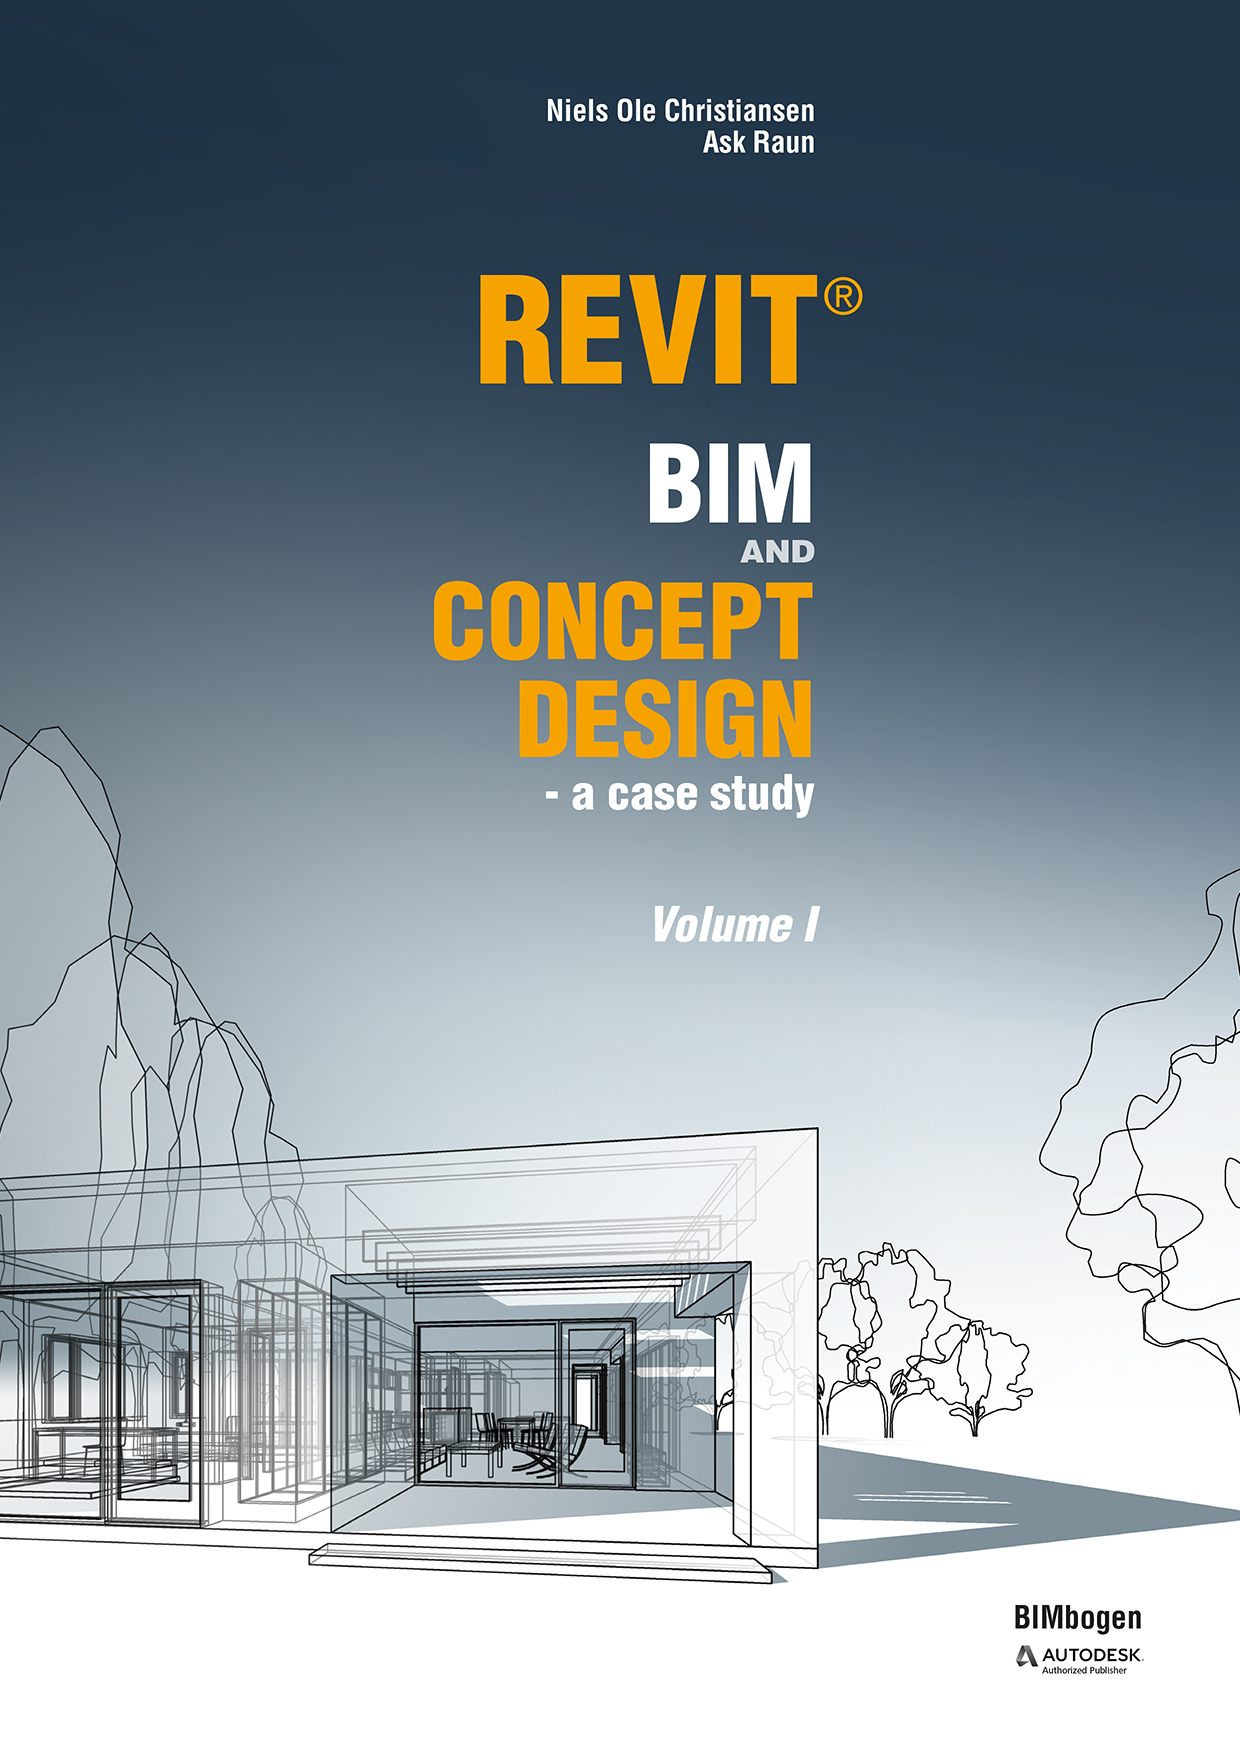 Revit BIM and concept design Volume 1